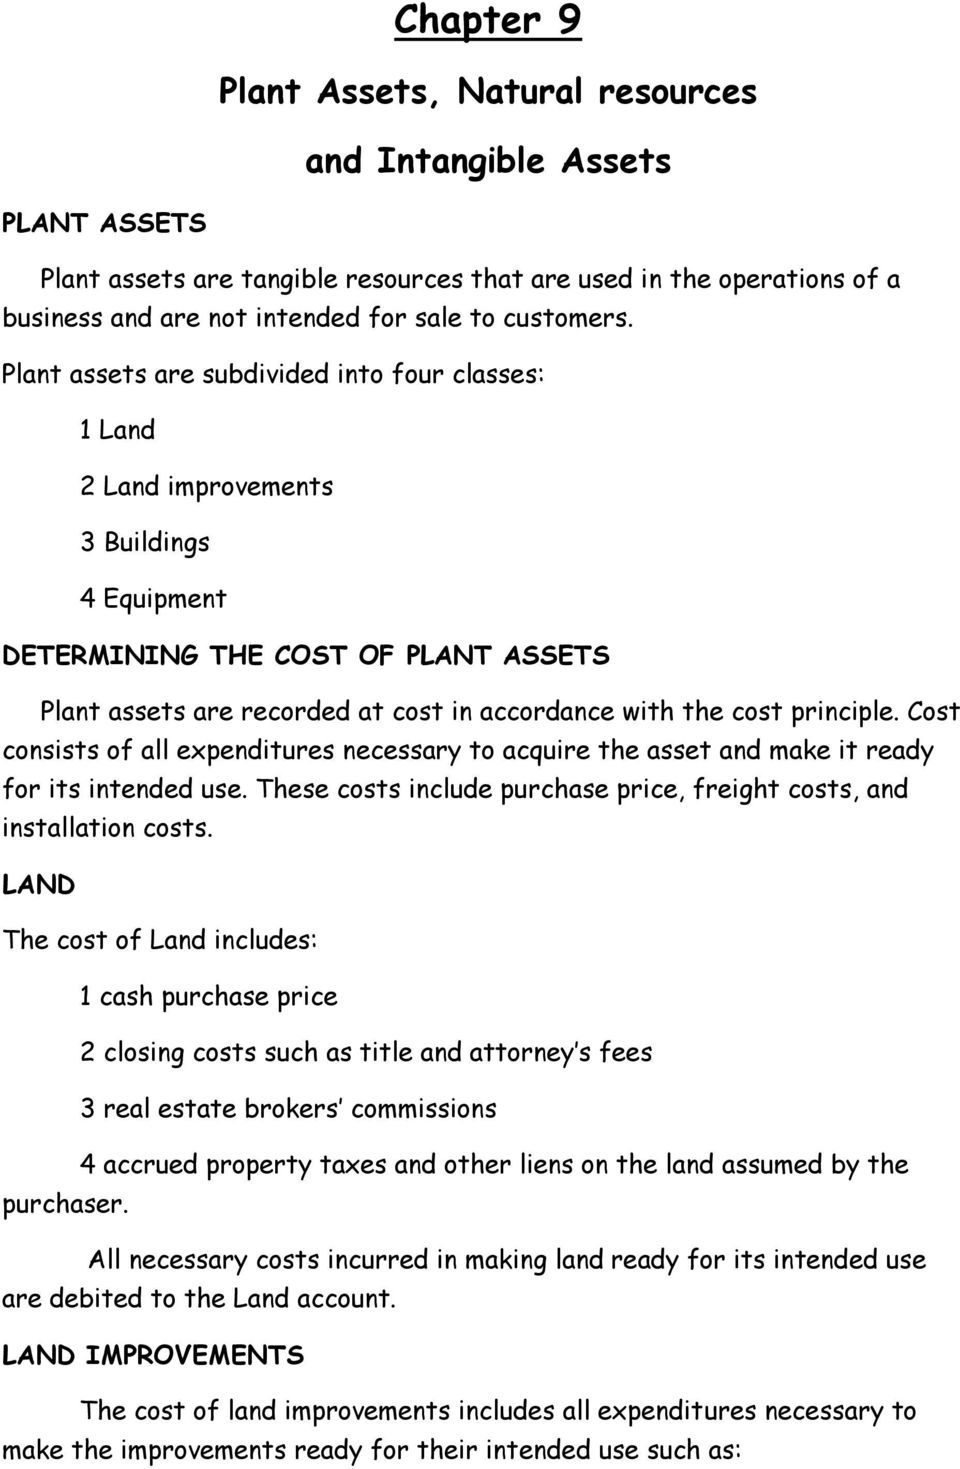 Plant assets are subdivided into four classes: 1 Land 2 Land improvements 3 Buildings 4 Equipment DETERMINING THE COST OF PLANT ASSETS Plant assets are recorded at cost in accordance with the cost